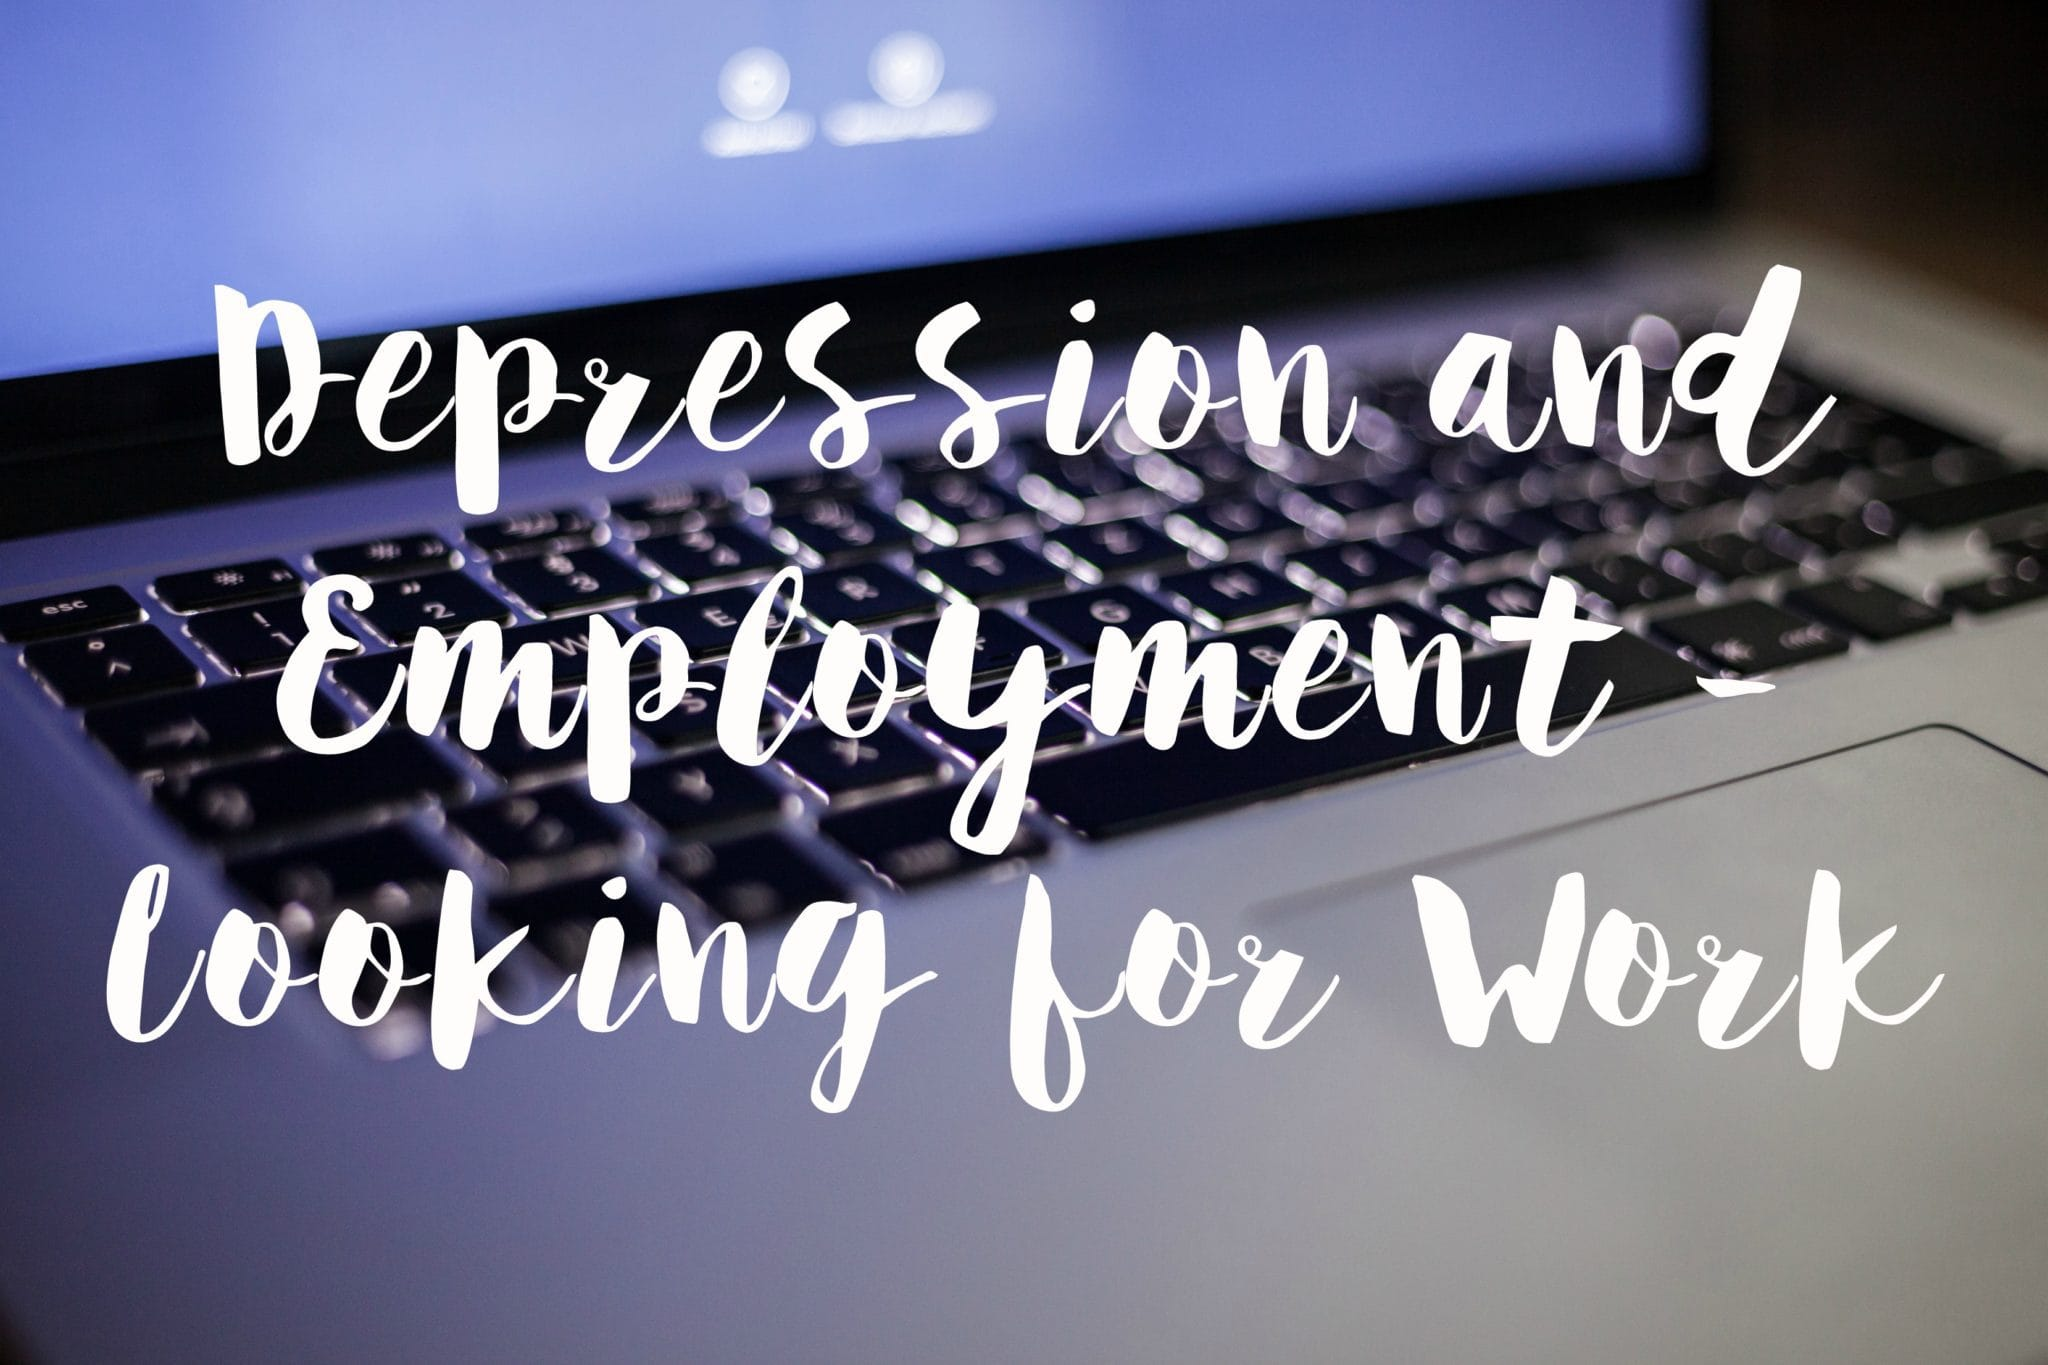 Depression and Employment - looking for work